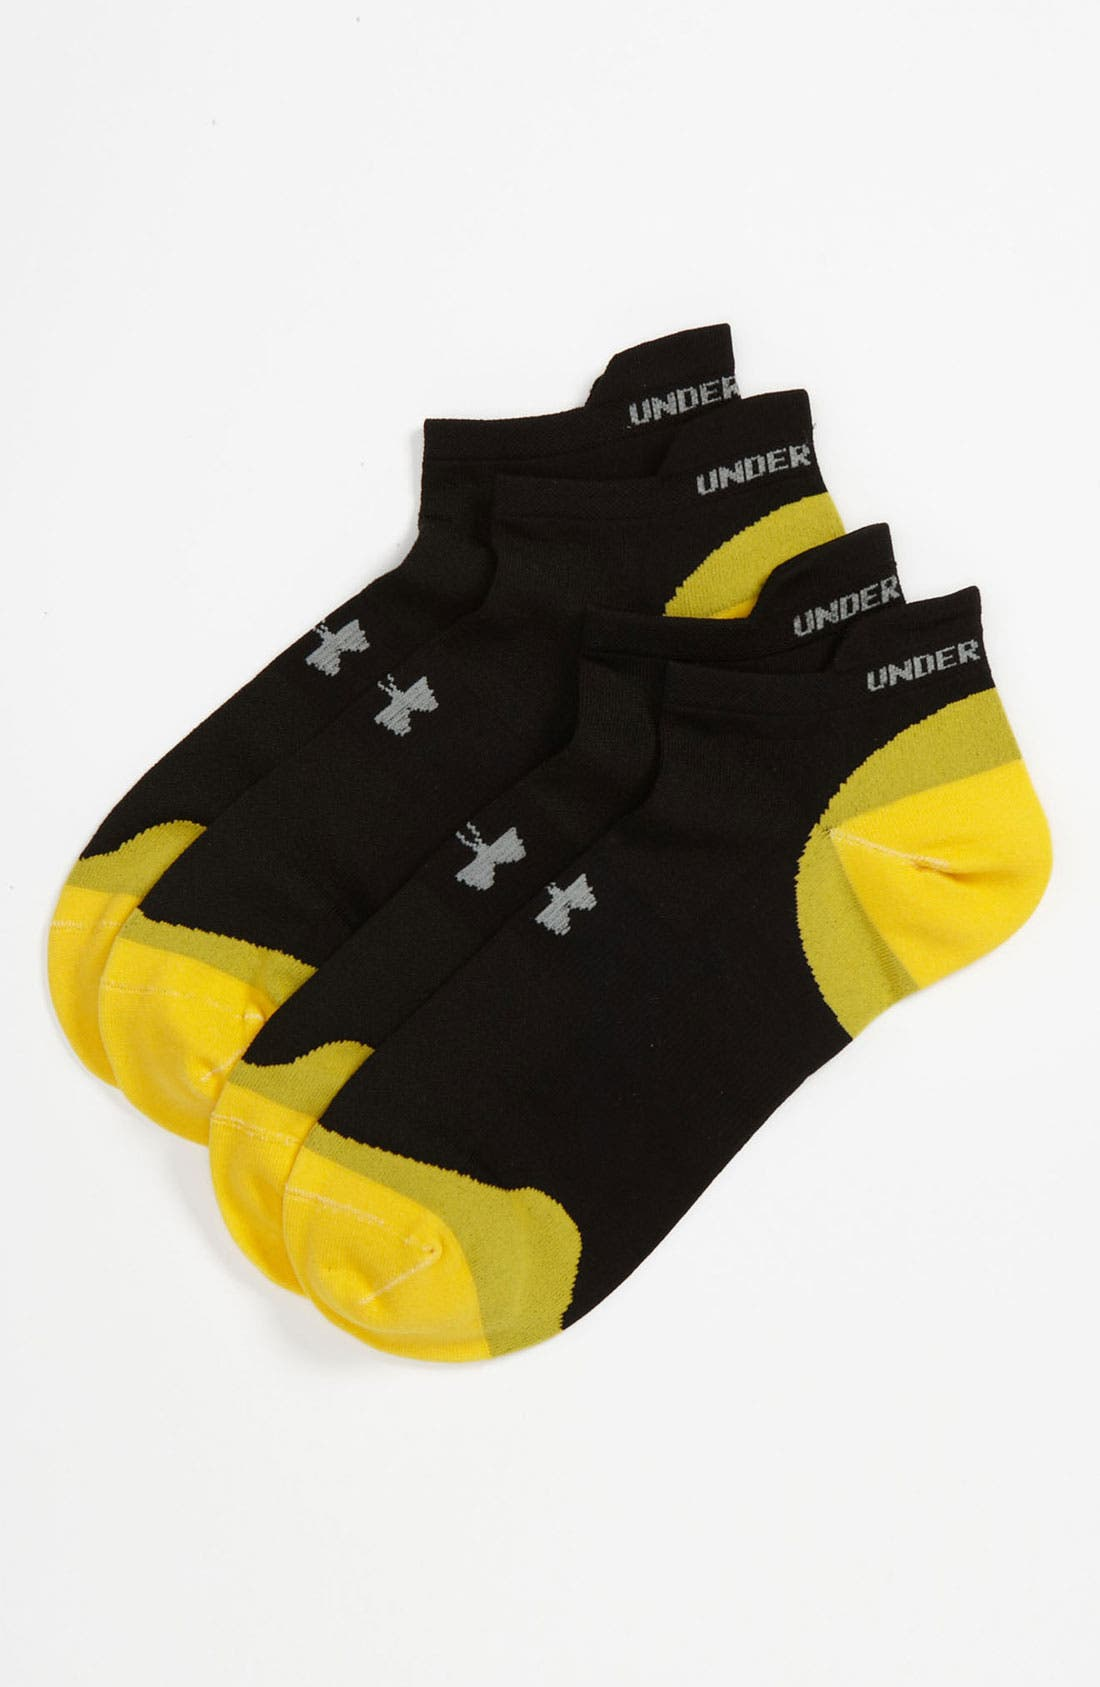 Alternate Image 1 Selected - Under Armour 'Ultra Lite' Running Socks (2-Pack)